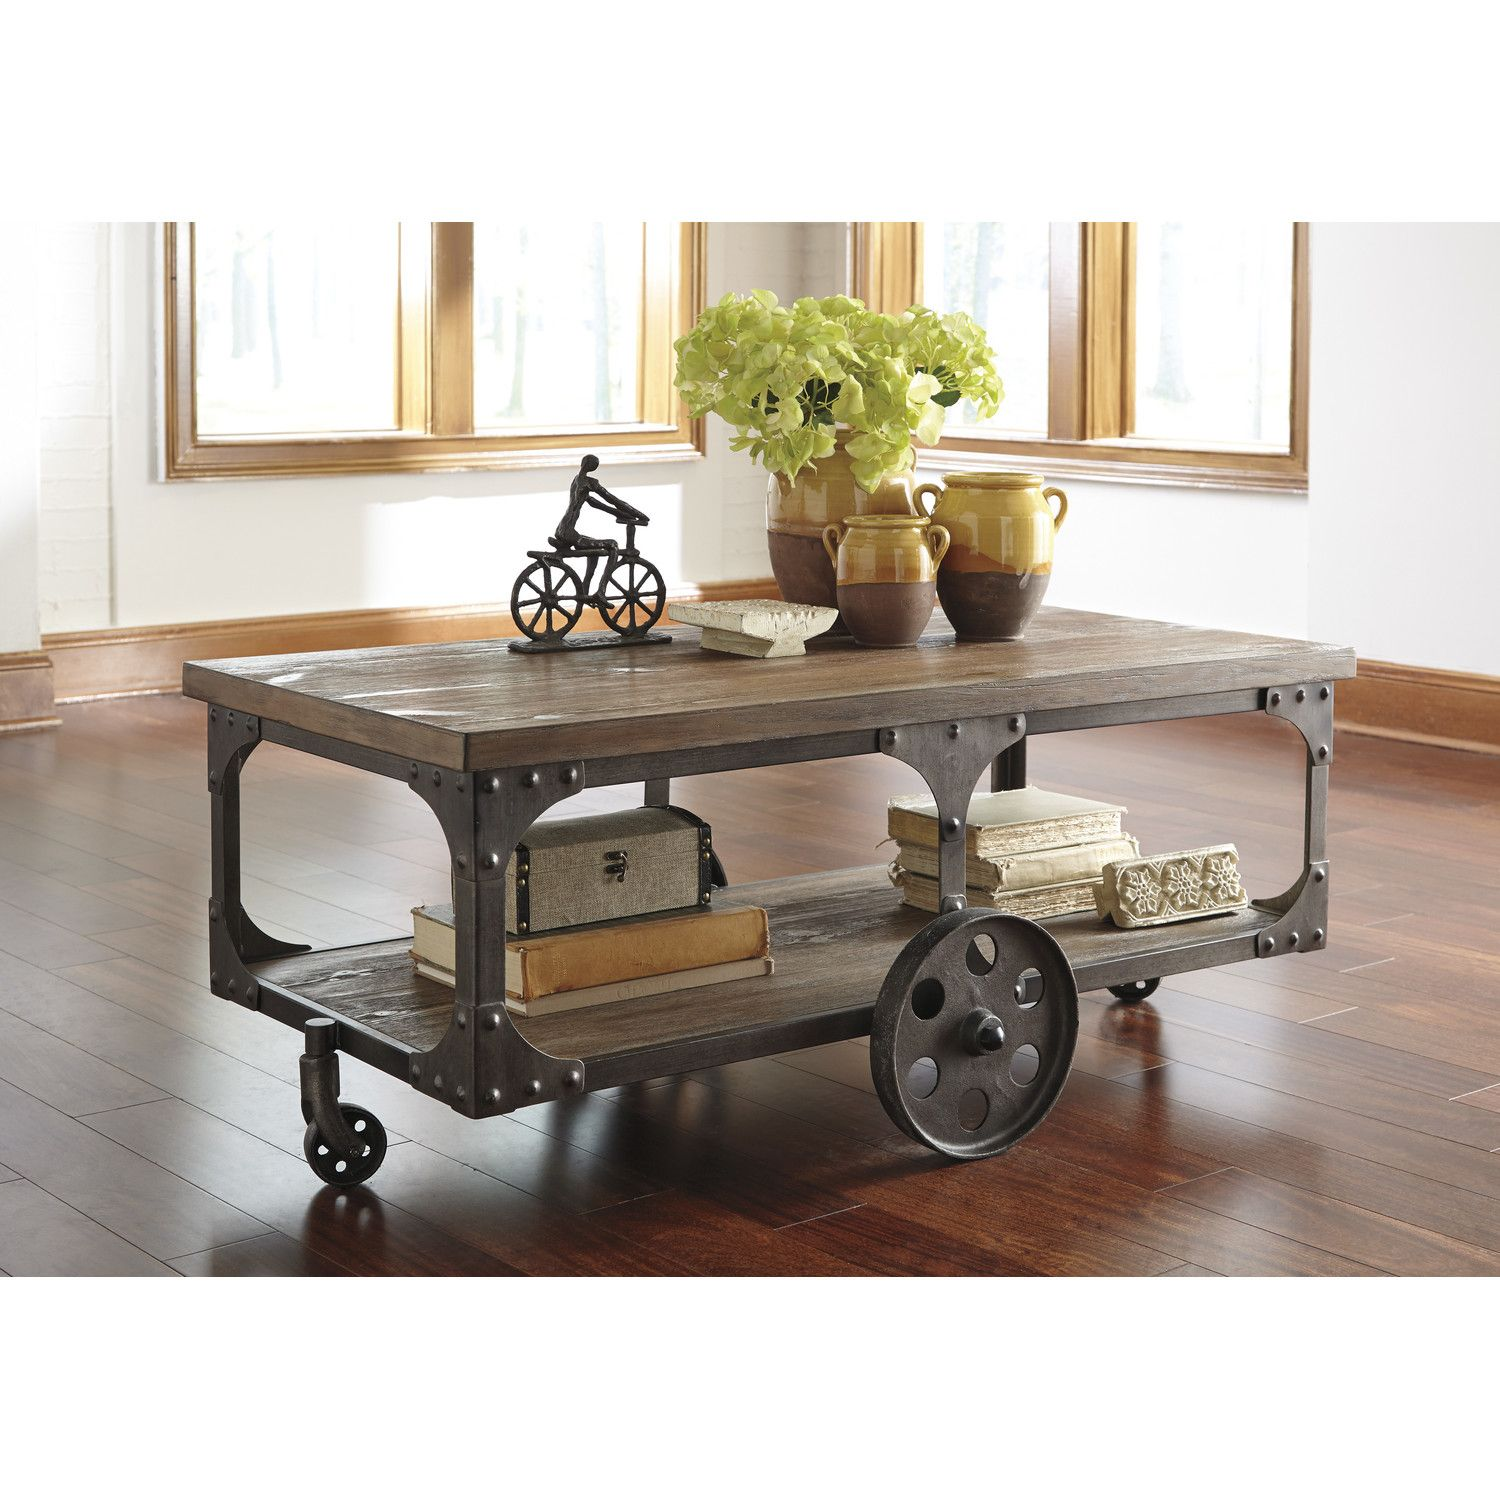 Signature Design by Ashley Coffee Table in Gray Brown